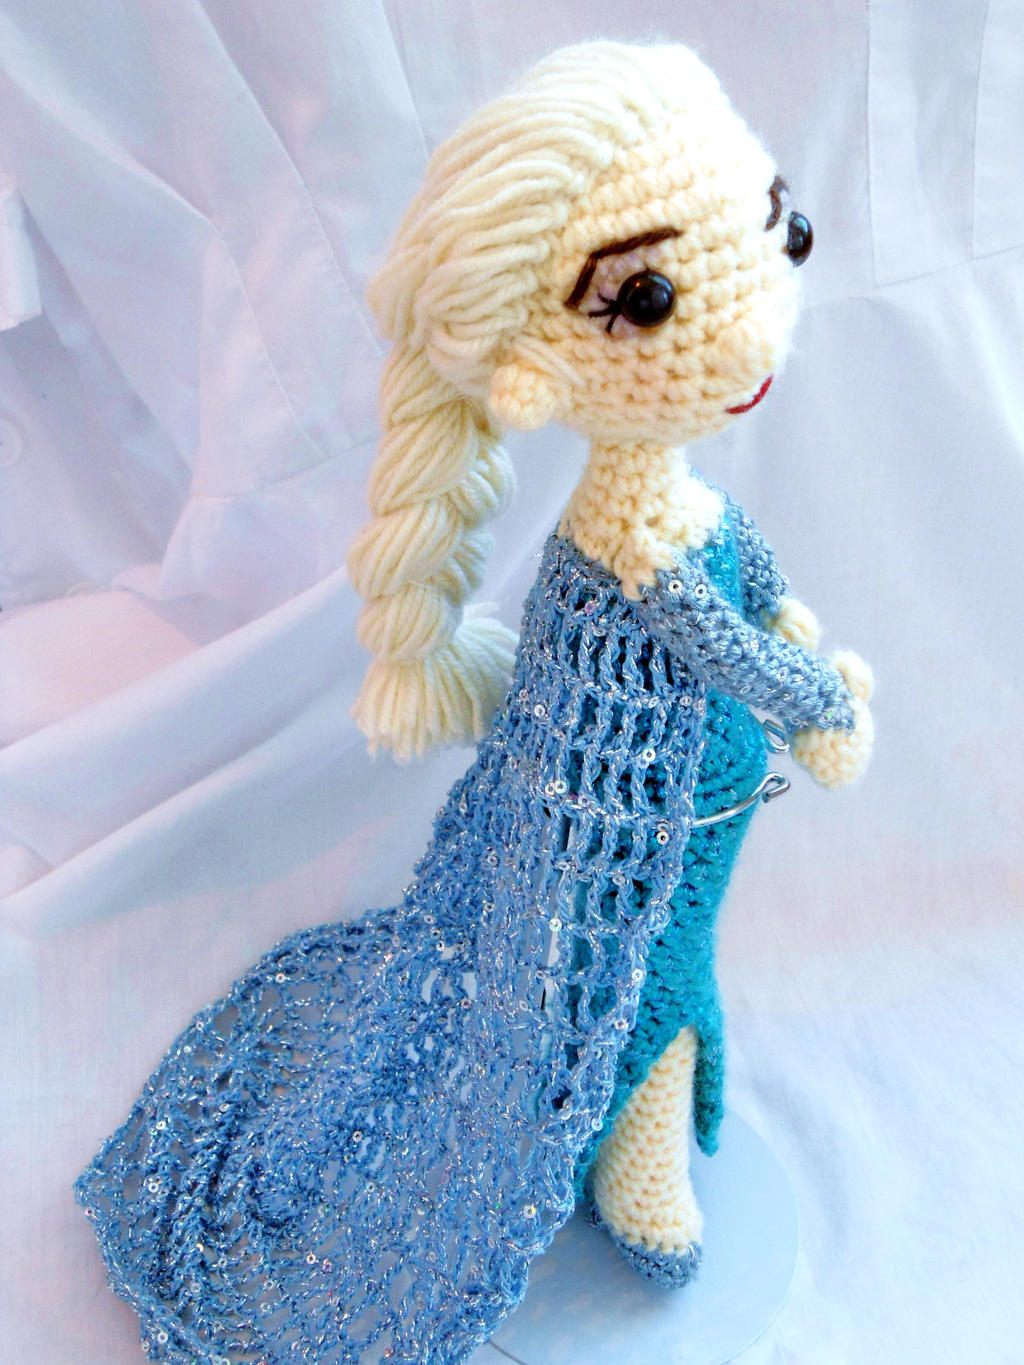 Crochet Elsa Amigurumi : Elsa (Frozen) amigurumi by dareKITTY on DeviantArt